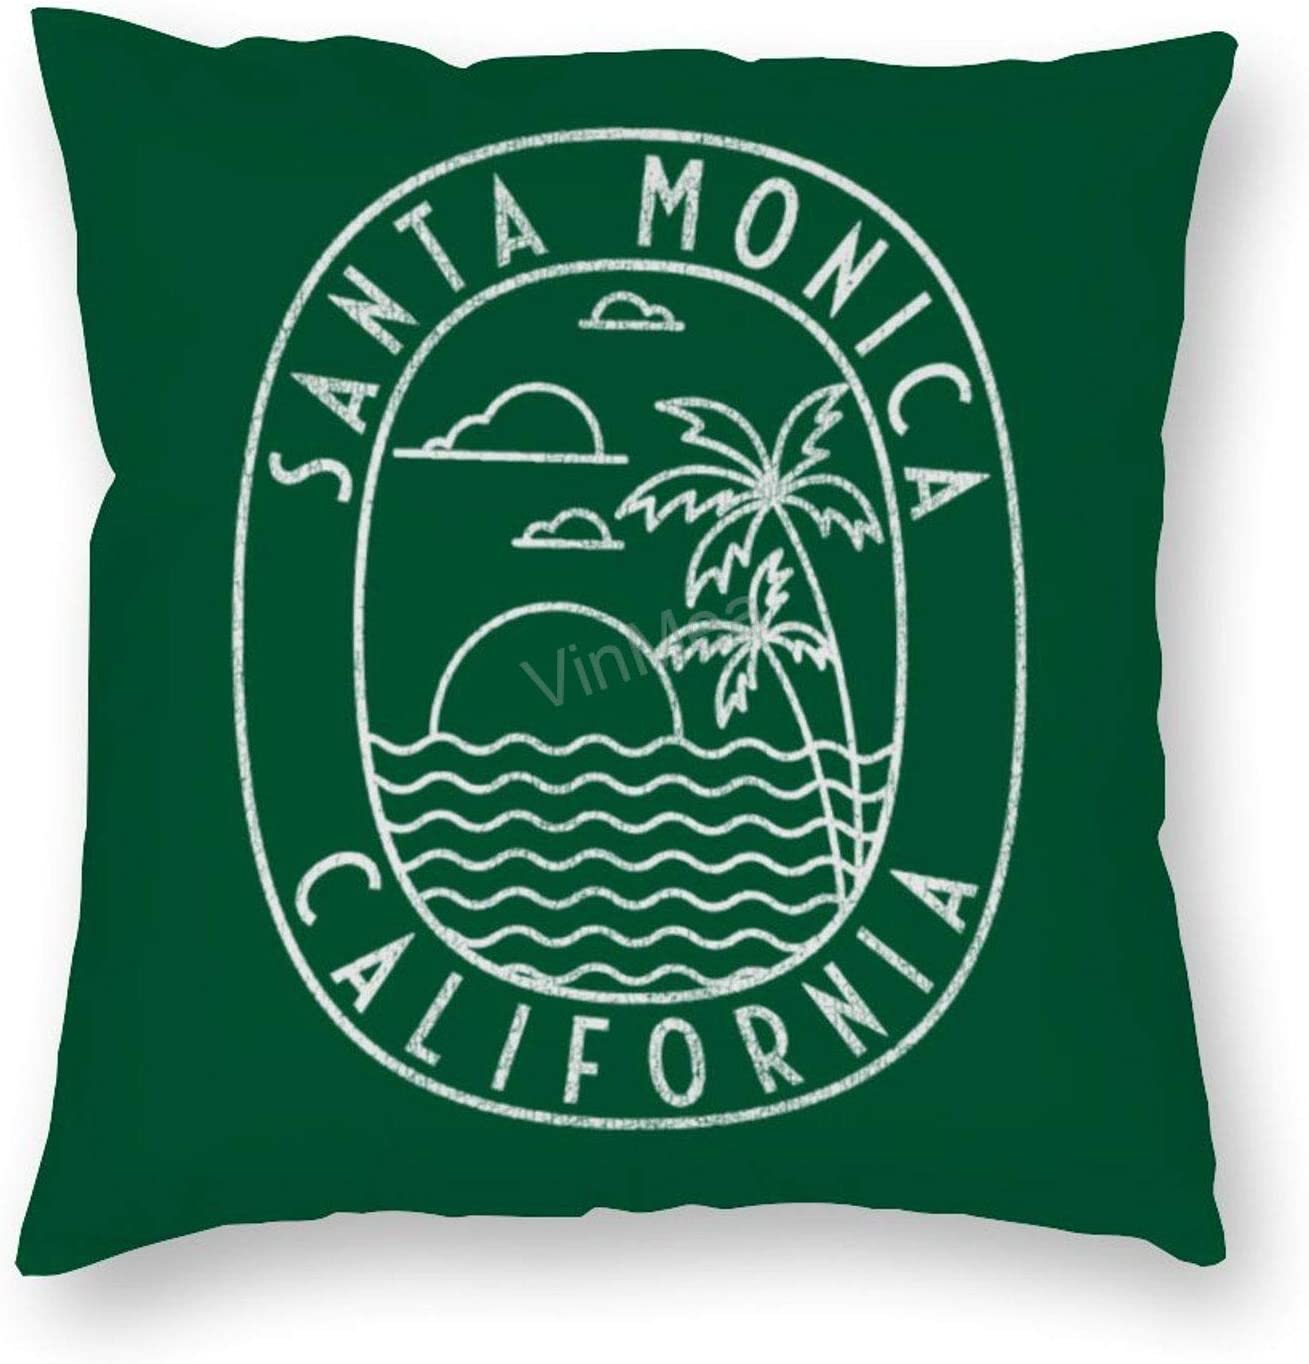 Decorative Pillow Covers Santa Monica, California Square Soft Luxury Velvet Cushion Covers, 22x22 Inches Pillowcase for Sofa Couch Bed Chair Car Home Decor